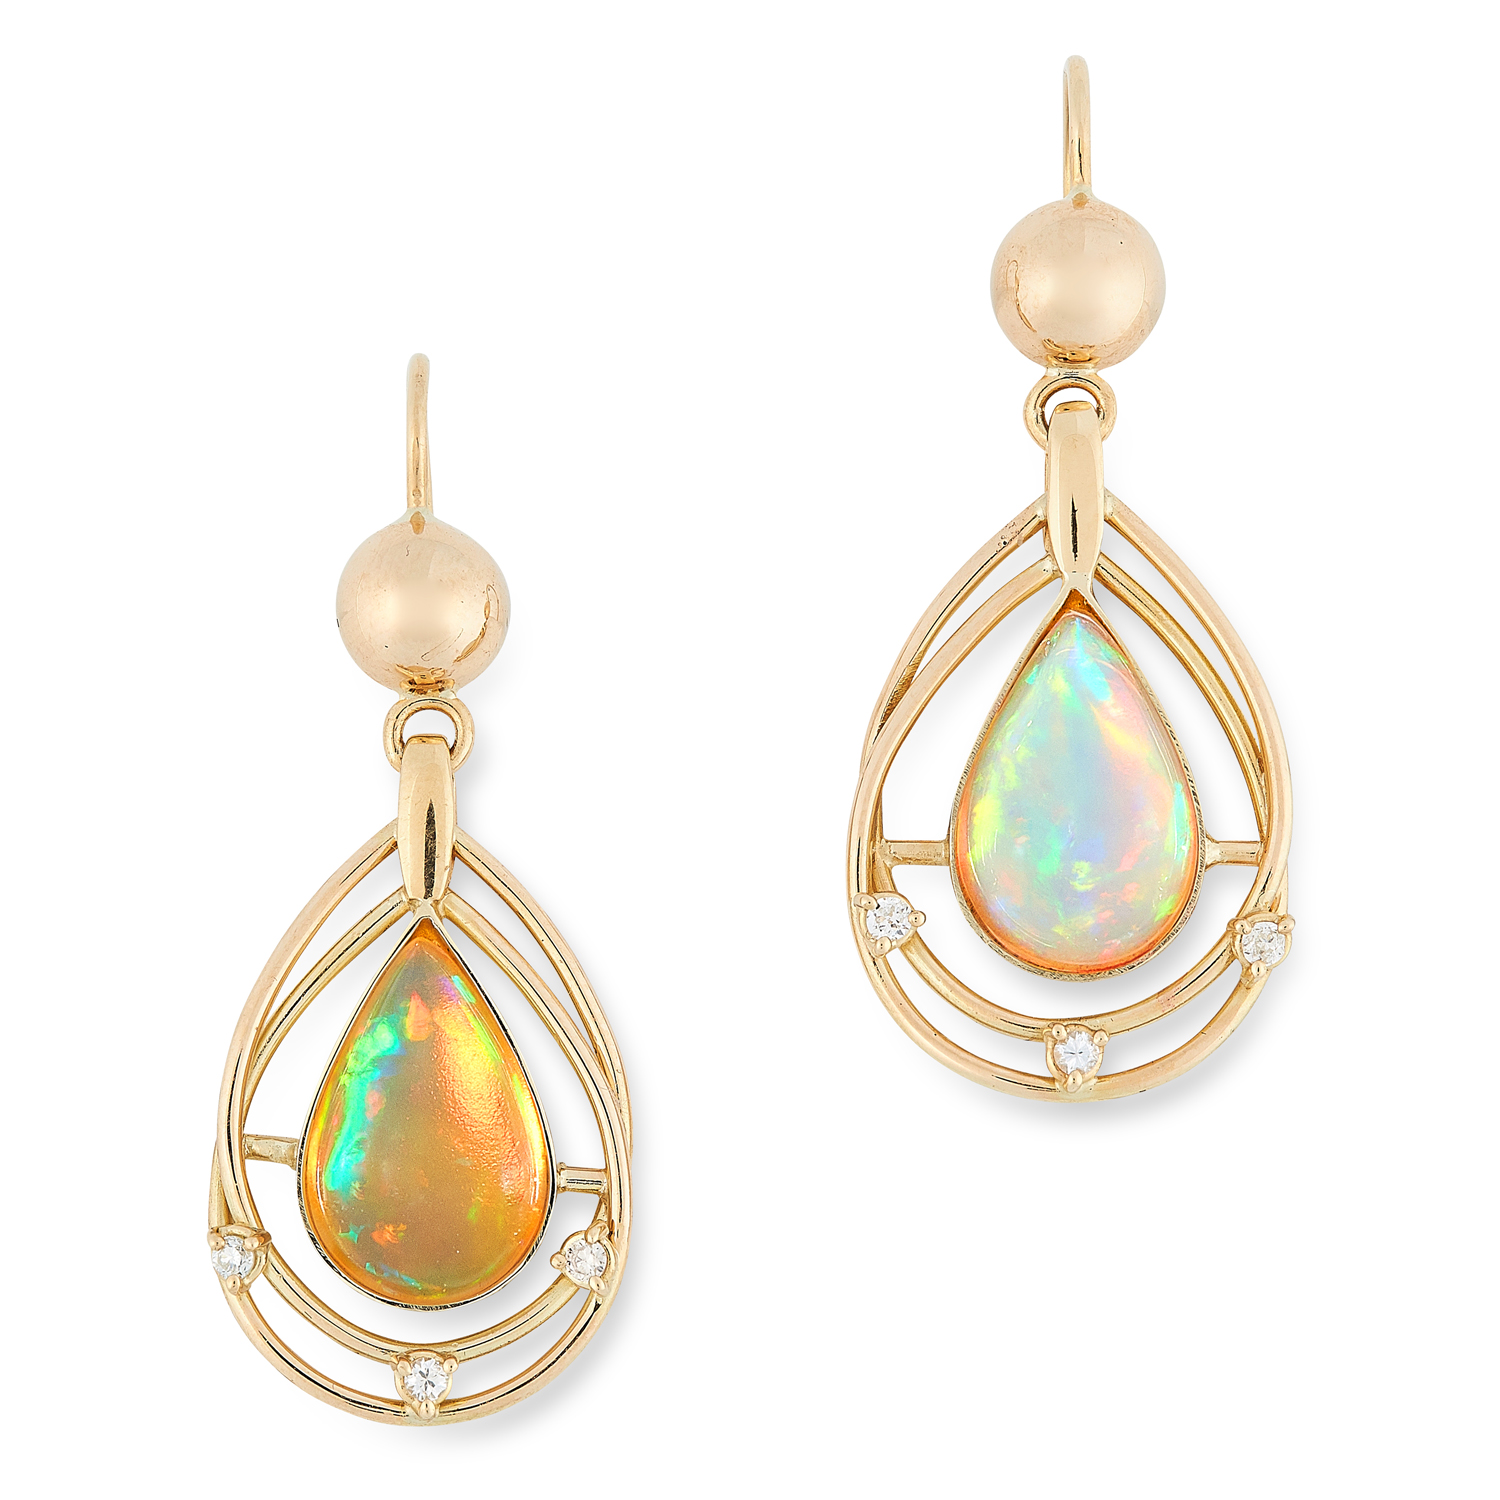 A PAIR OF OPAL AND DIAMOND EARRINGS each set with a pear shaped cabochon cut opal totalling 5.5-6.